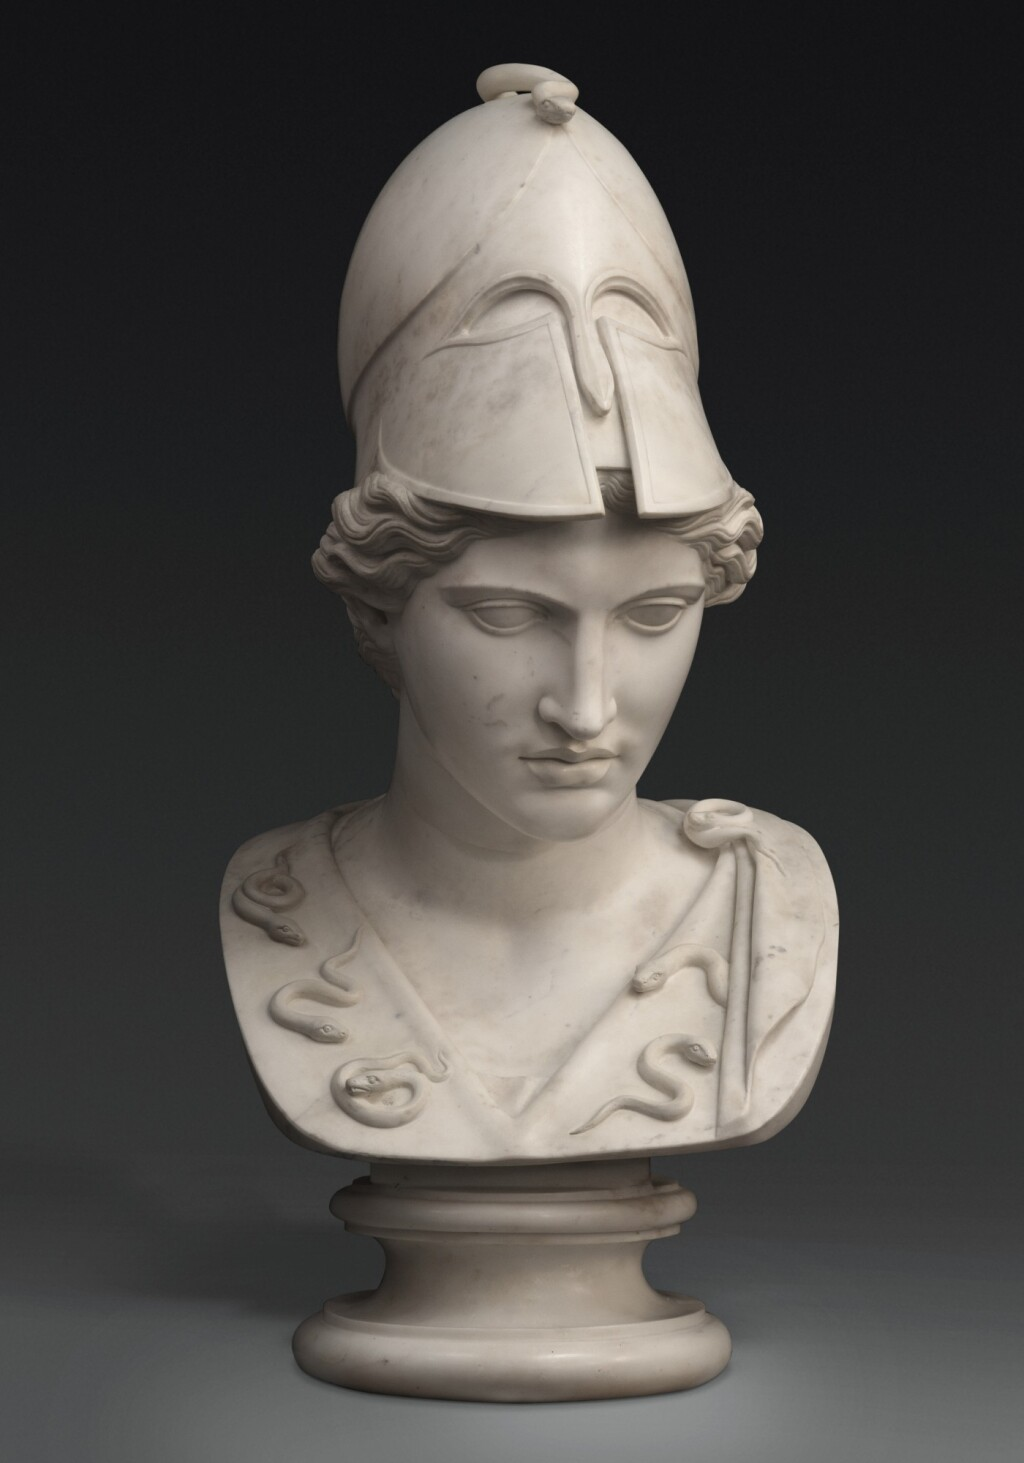 ITALIAN, 19TH CENTURY, AFTER THE ANTIQUE | MONUMENTAL BUST OF ATHENA